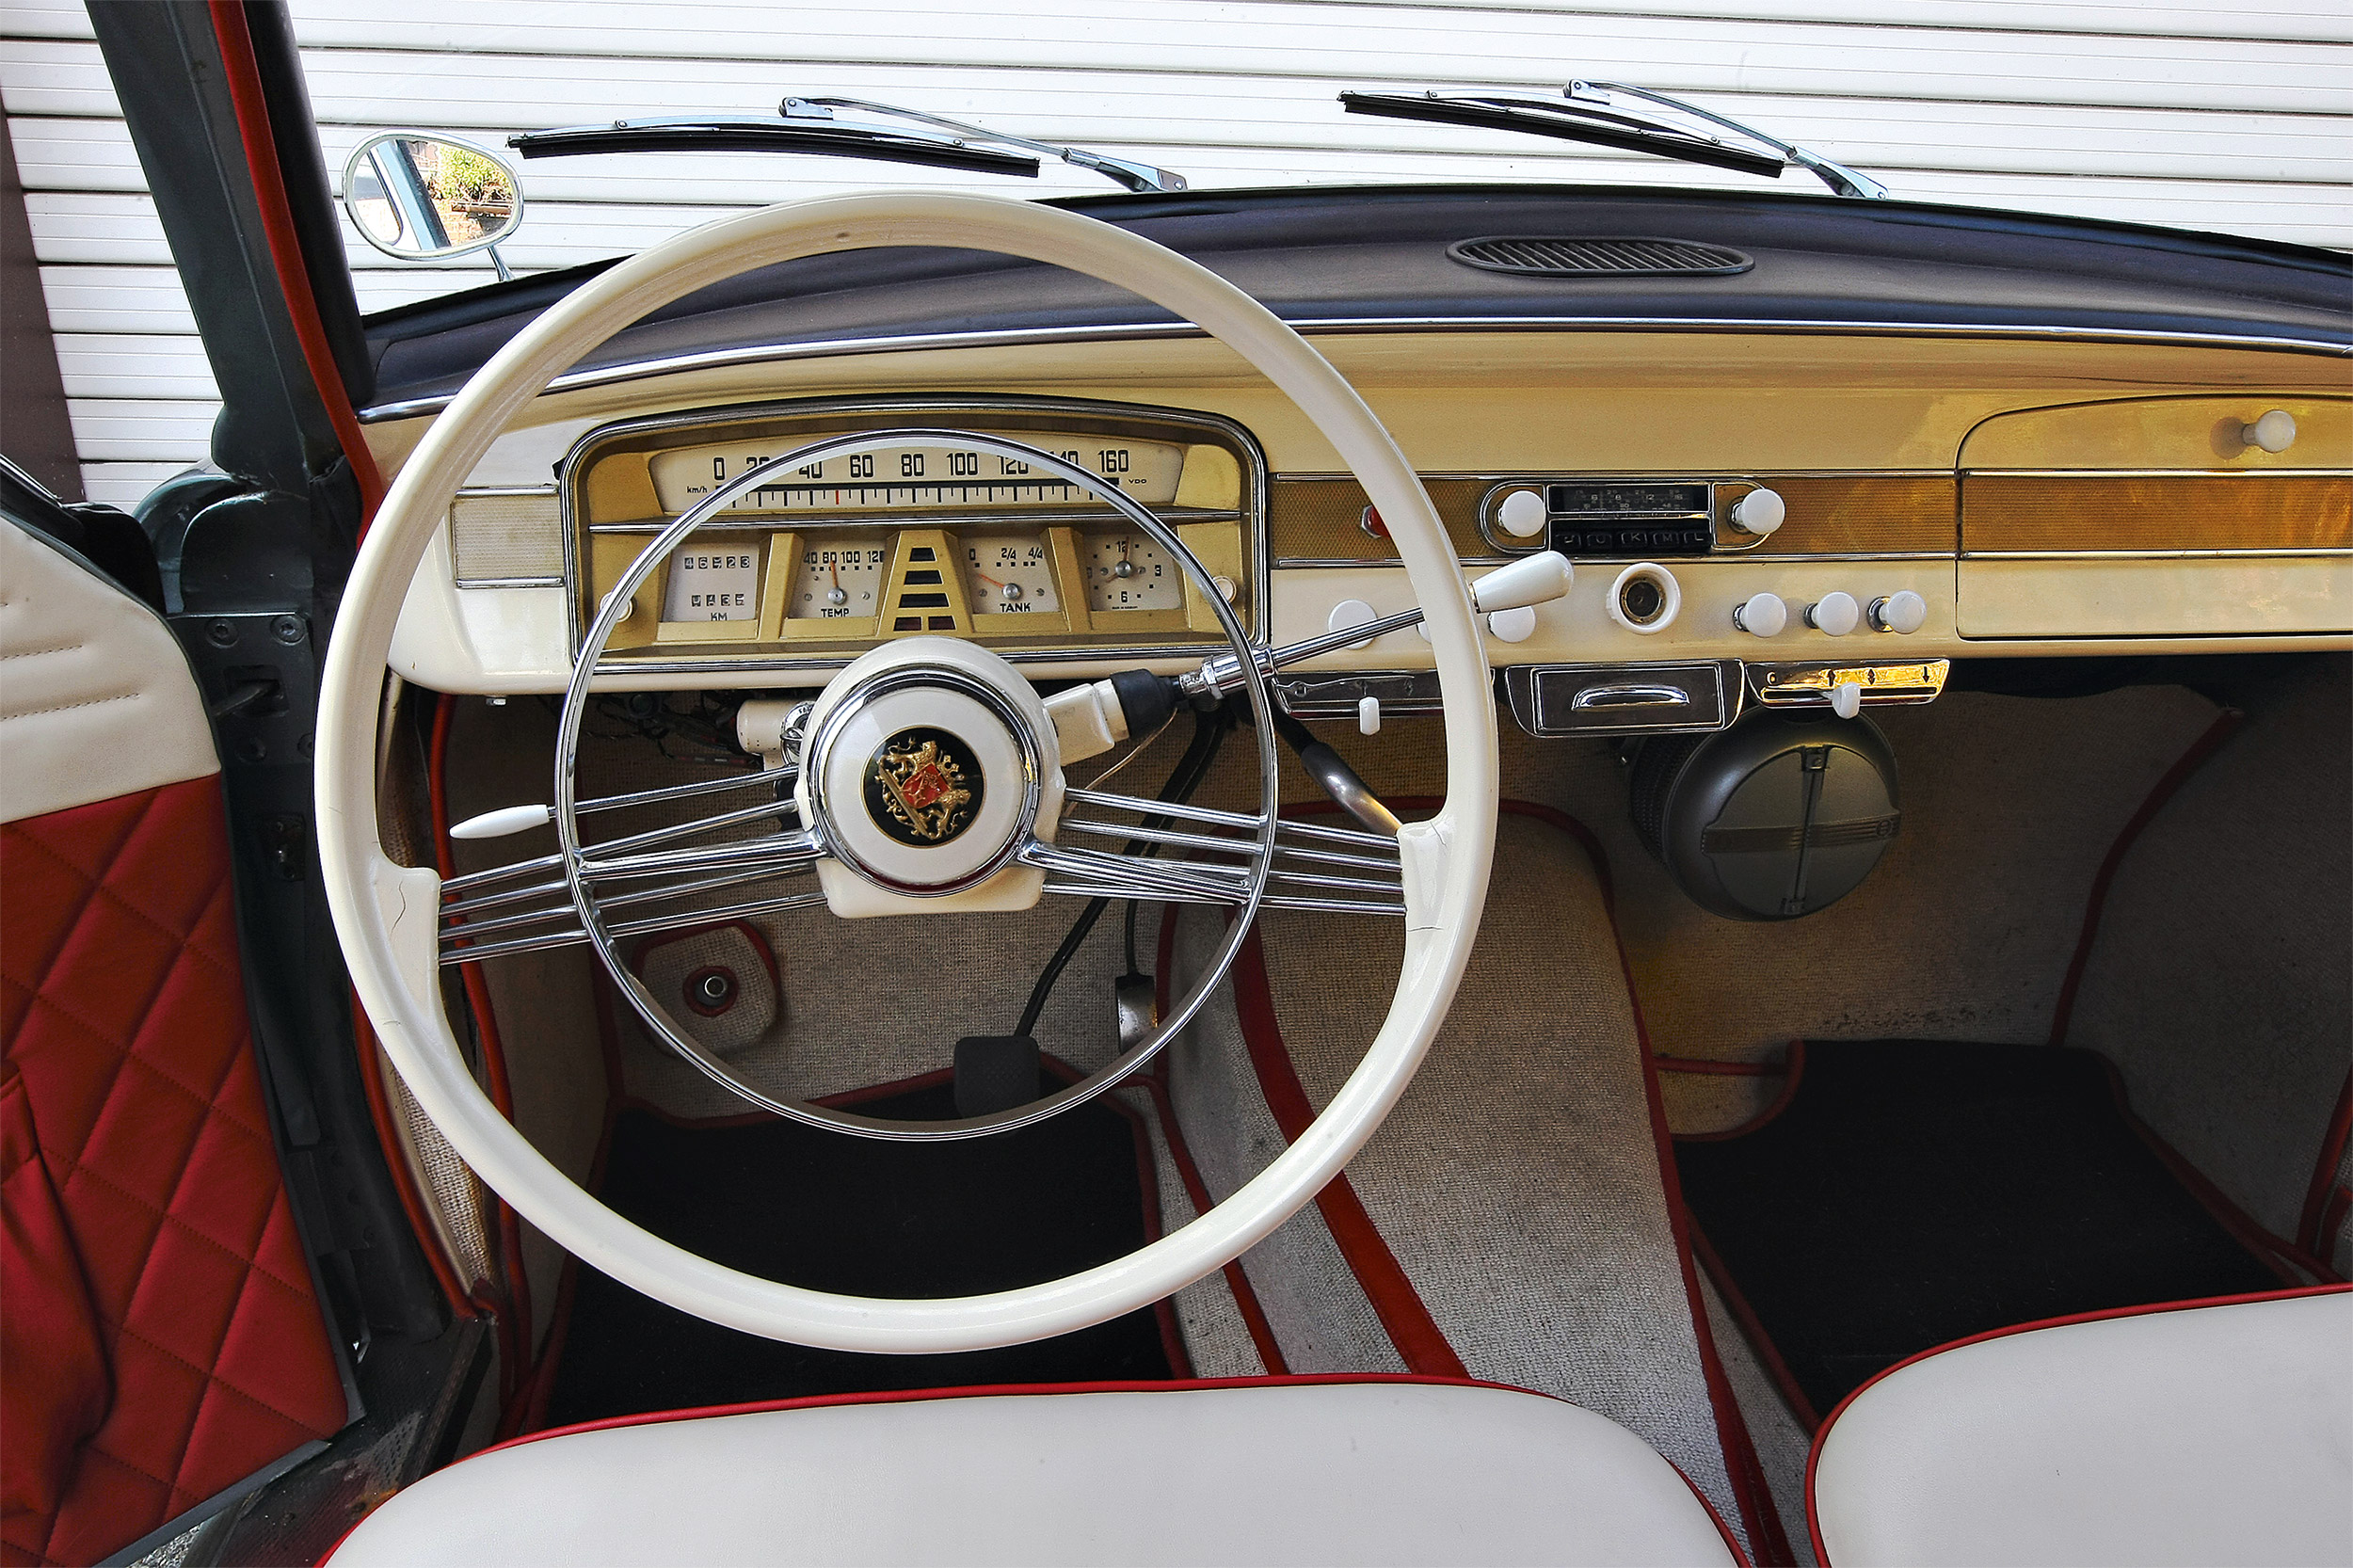 Borgward Isabella dashboard